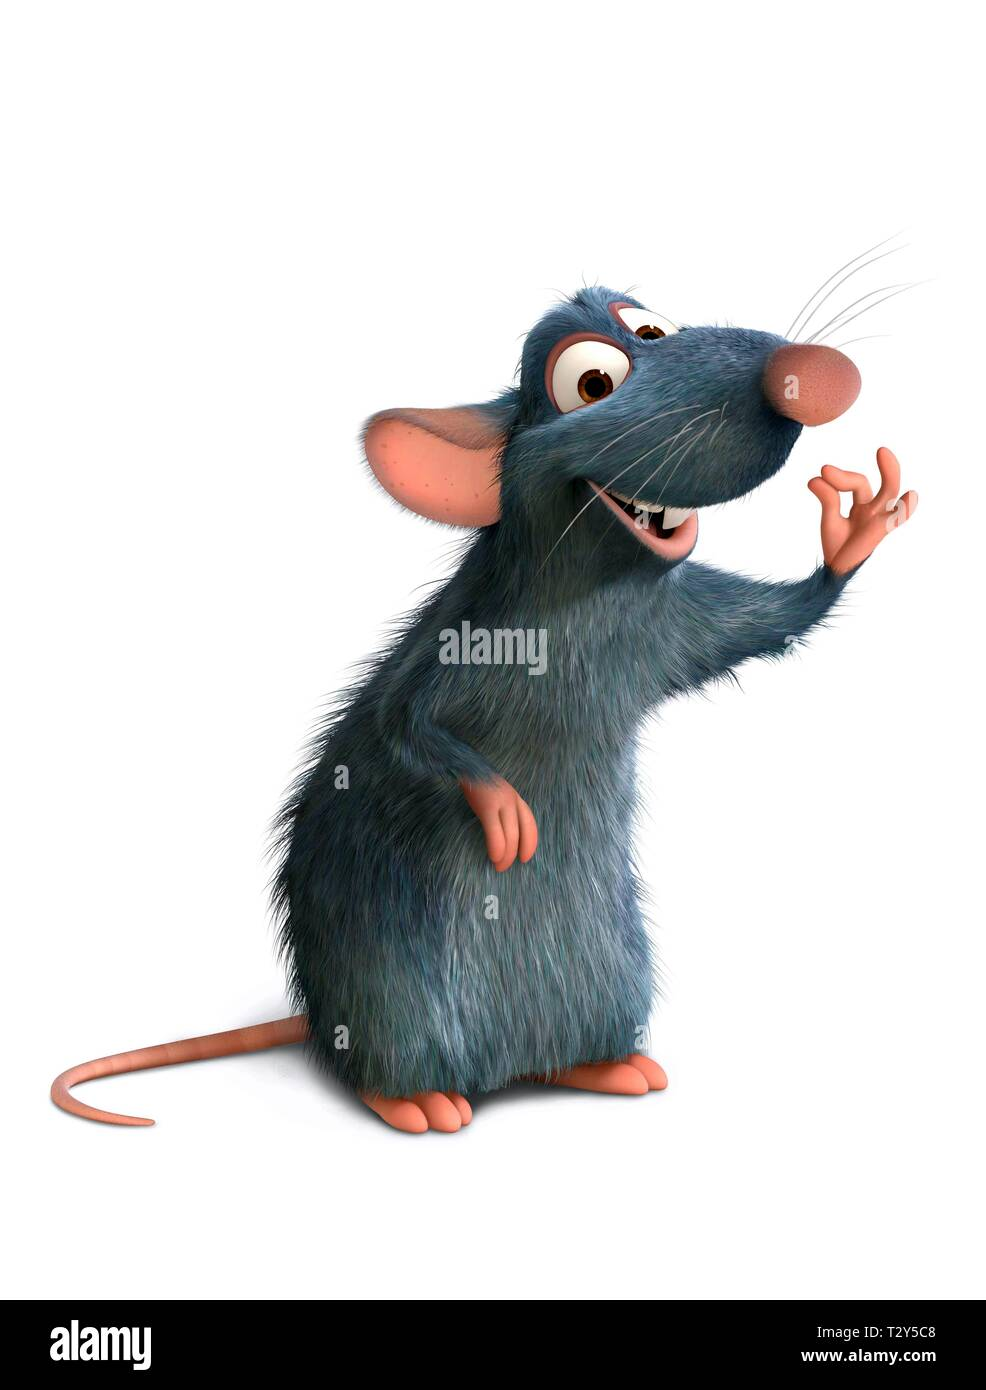 RATATOUILLE, REMY, 2007 - Stock Image